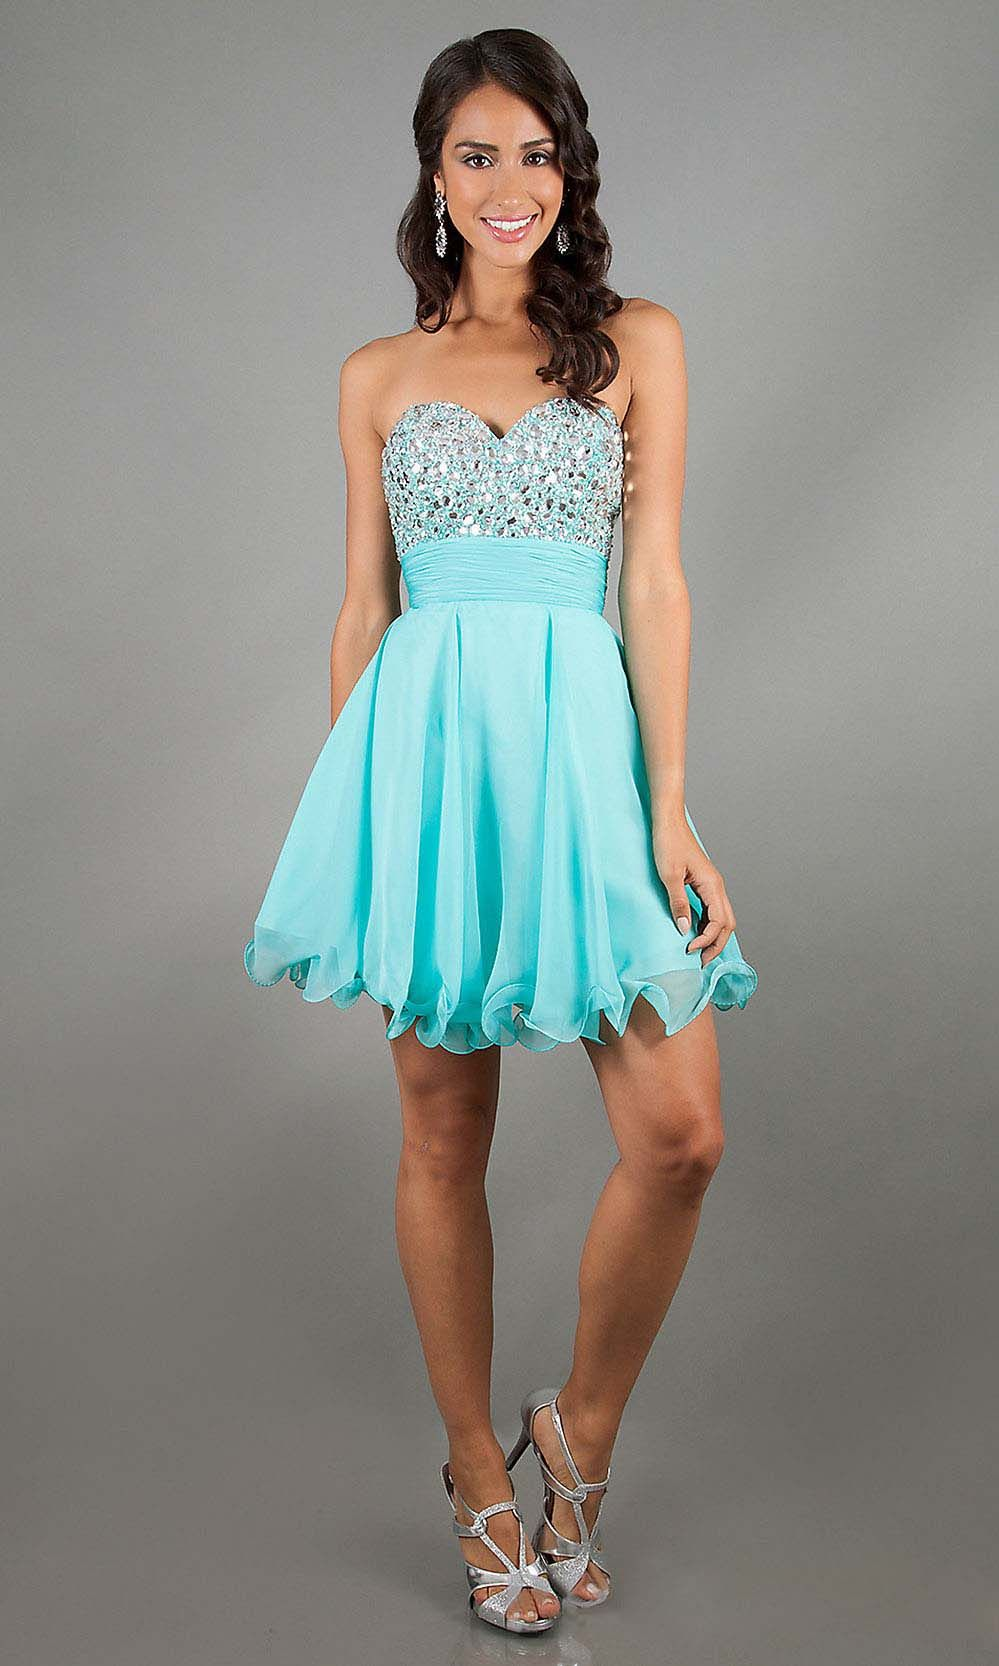 Boutique Chic Lace Appliqued Mermaid Prom Dress Evening